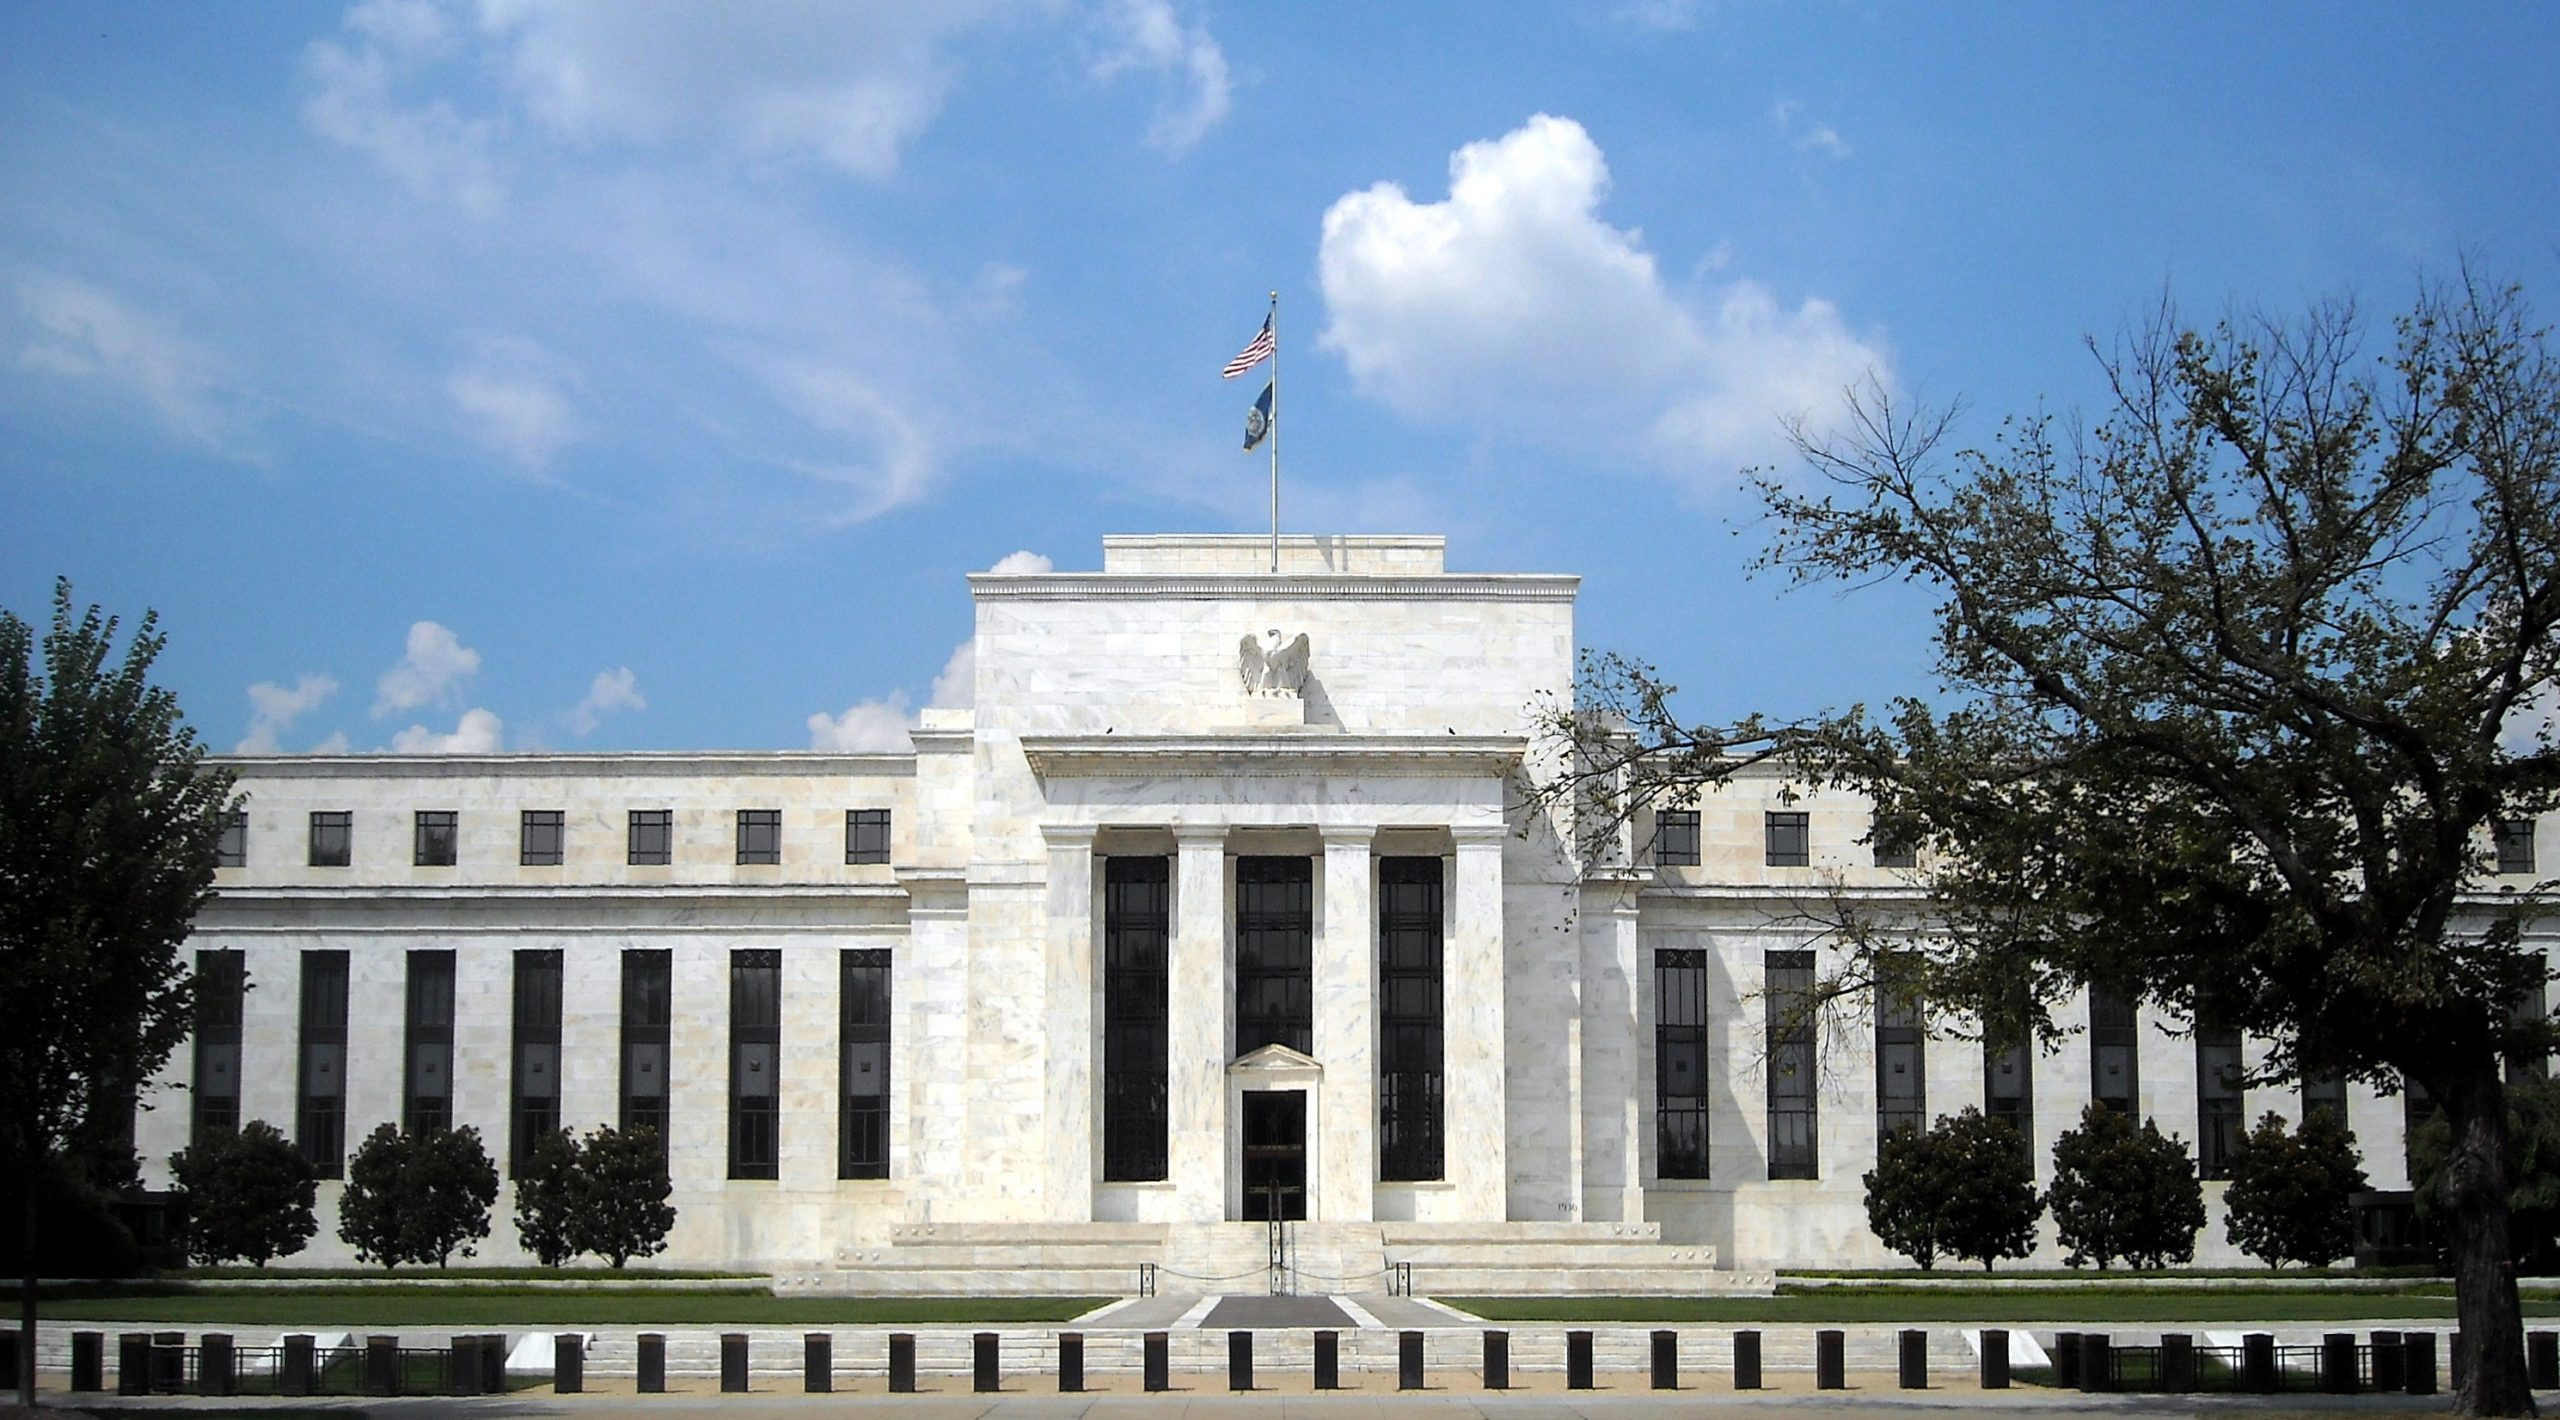 The U.S federal reserve building